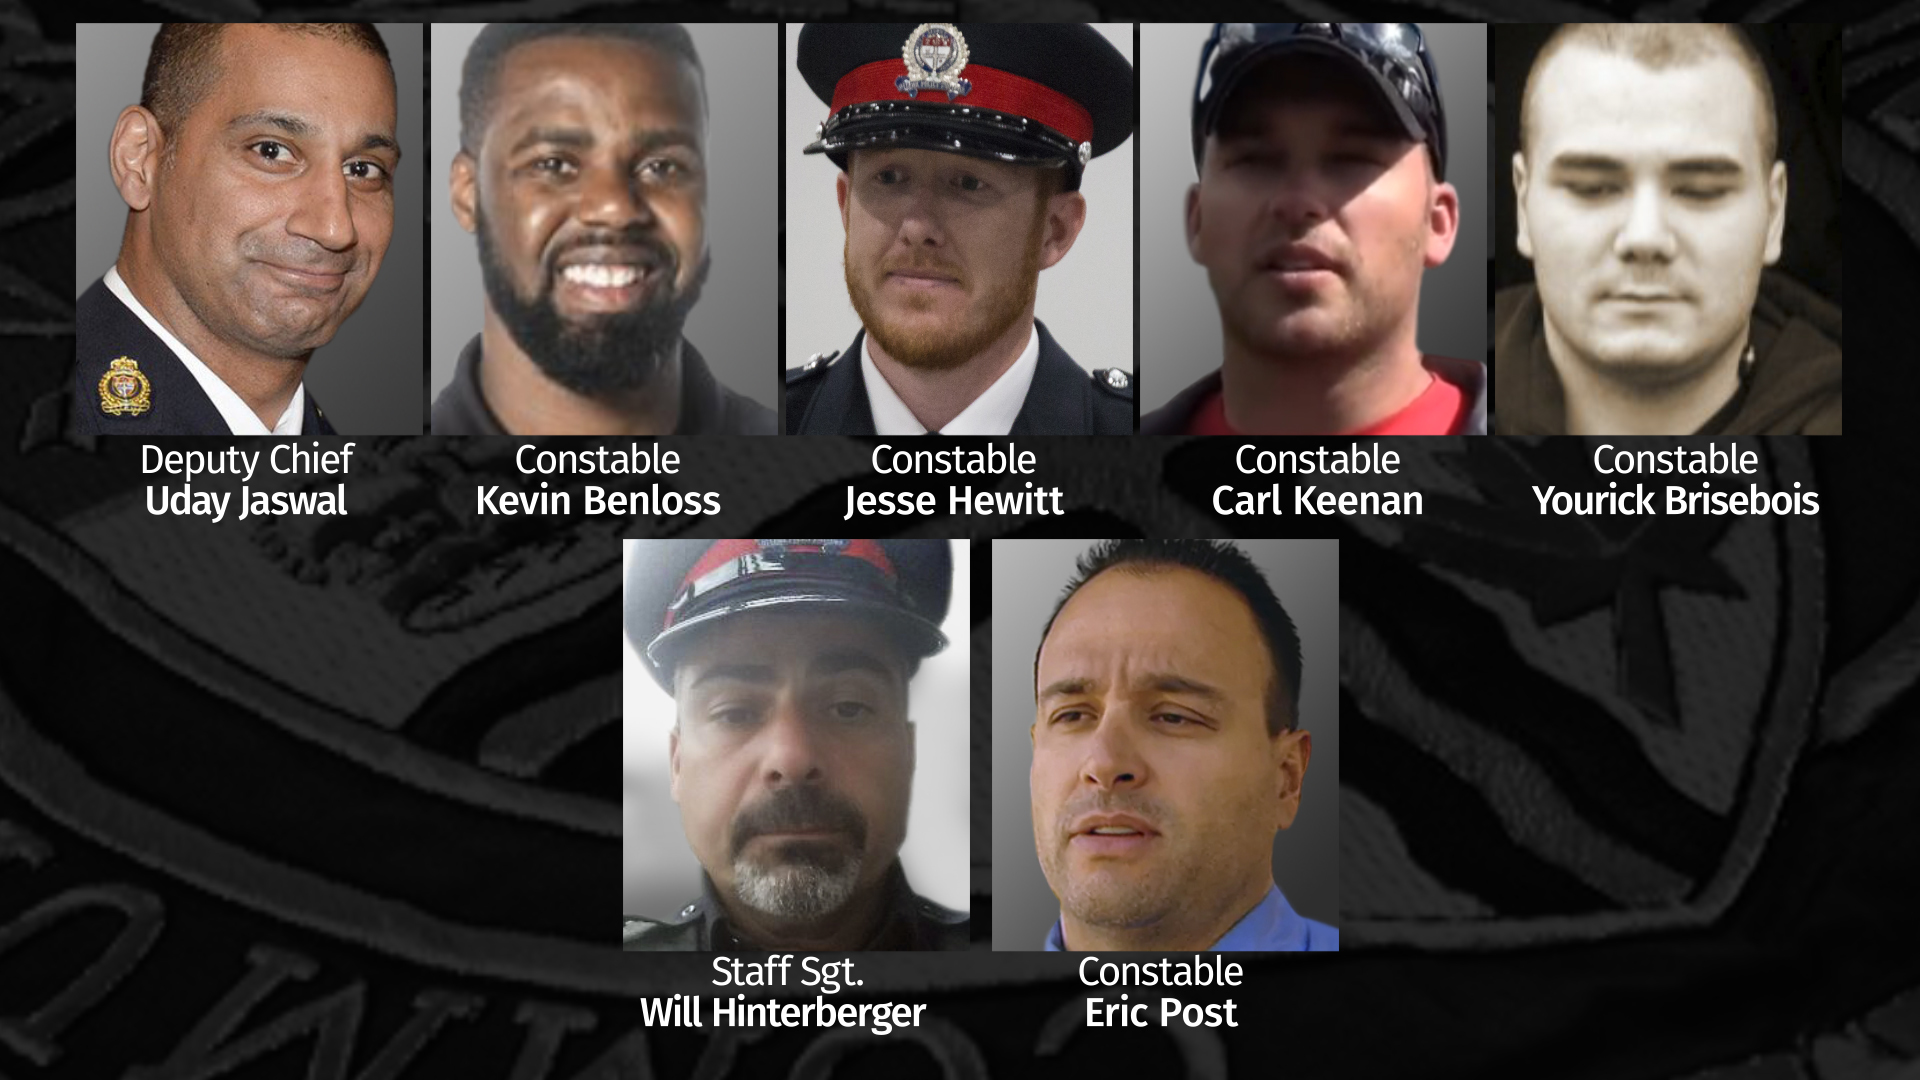 As of February 2021, there are eight Ottawa police officers accused of misconduct involving women who have been suspended. One officer, Const. Brandi Fraser is not shown. (Jake Boone/CBC)